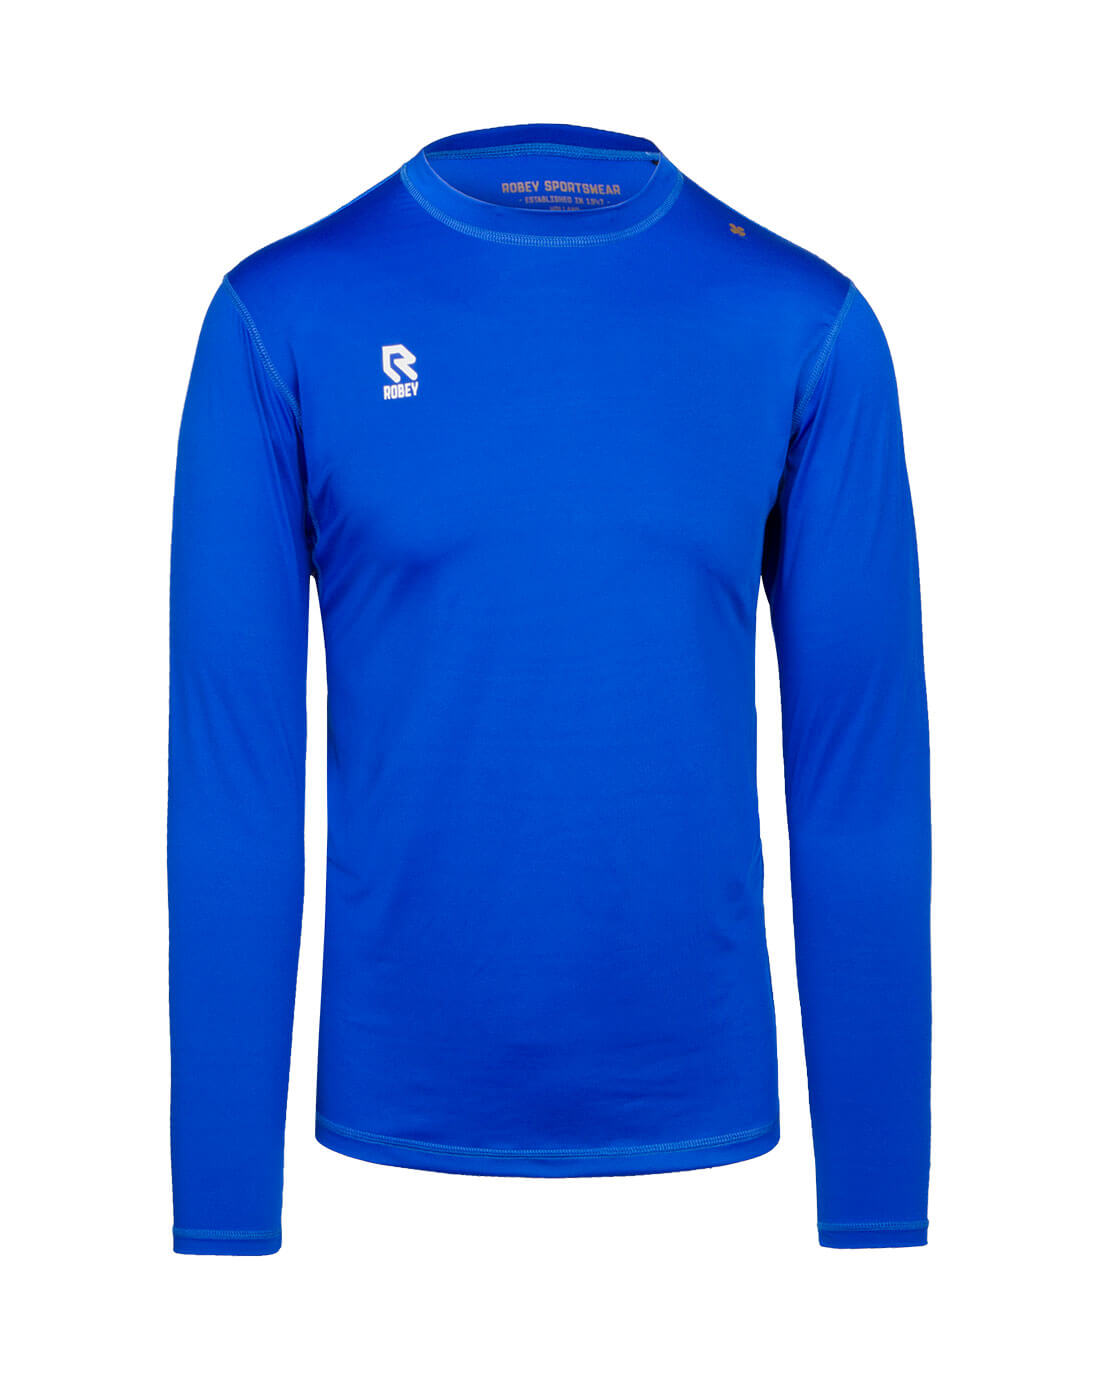 Robey Baselayer Thermoshirt - Royal Blue